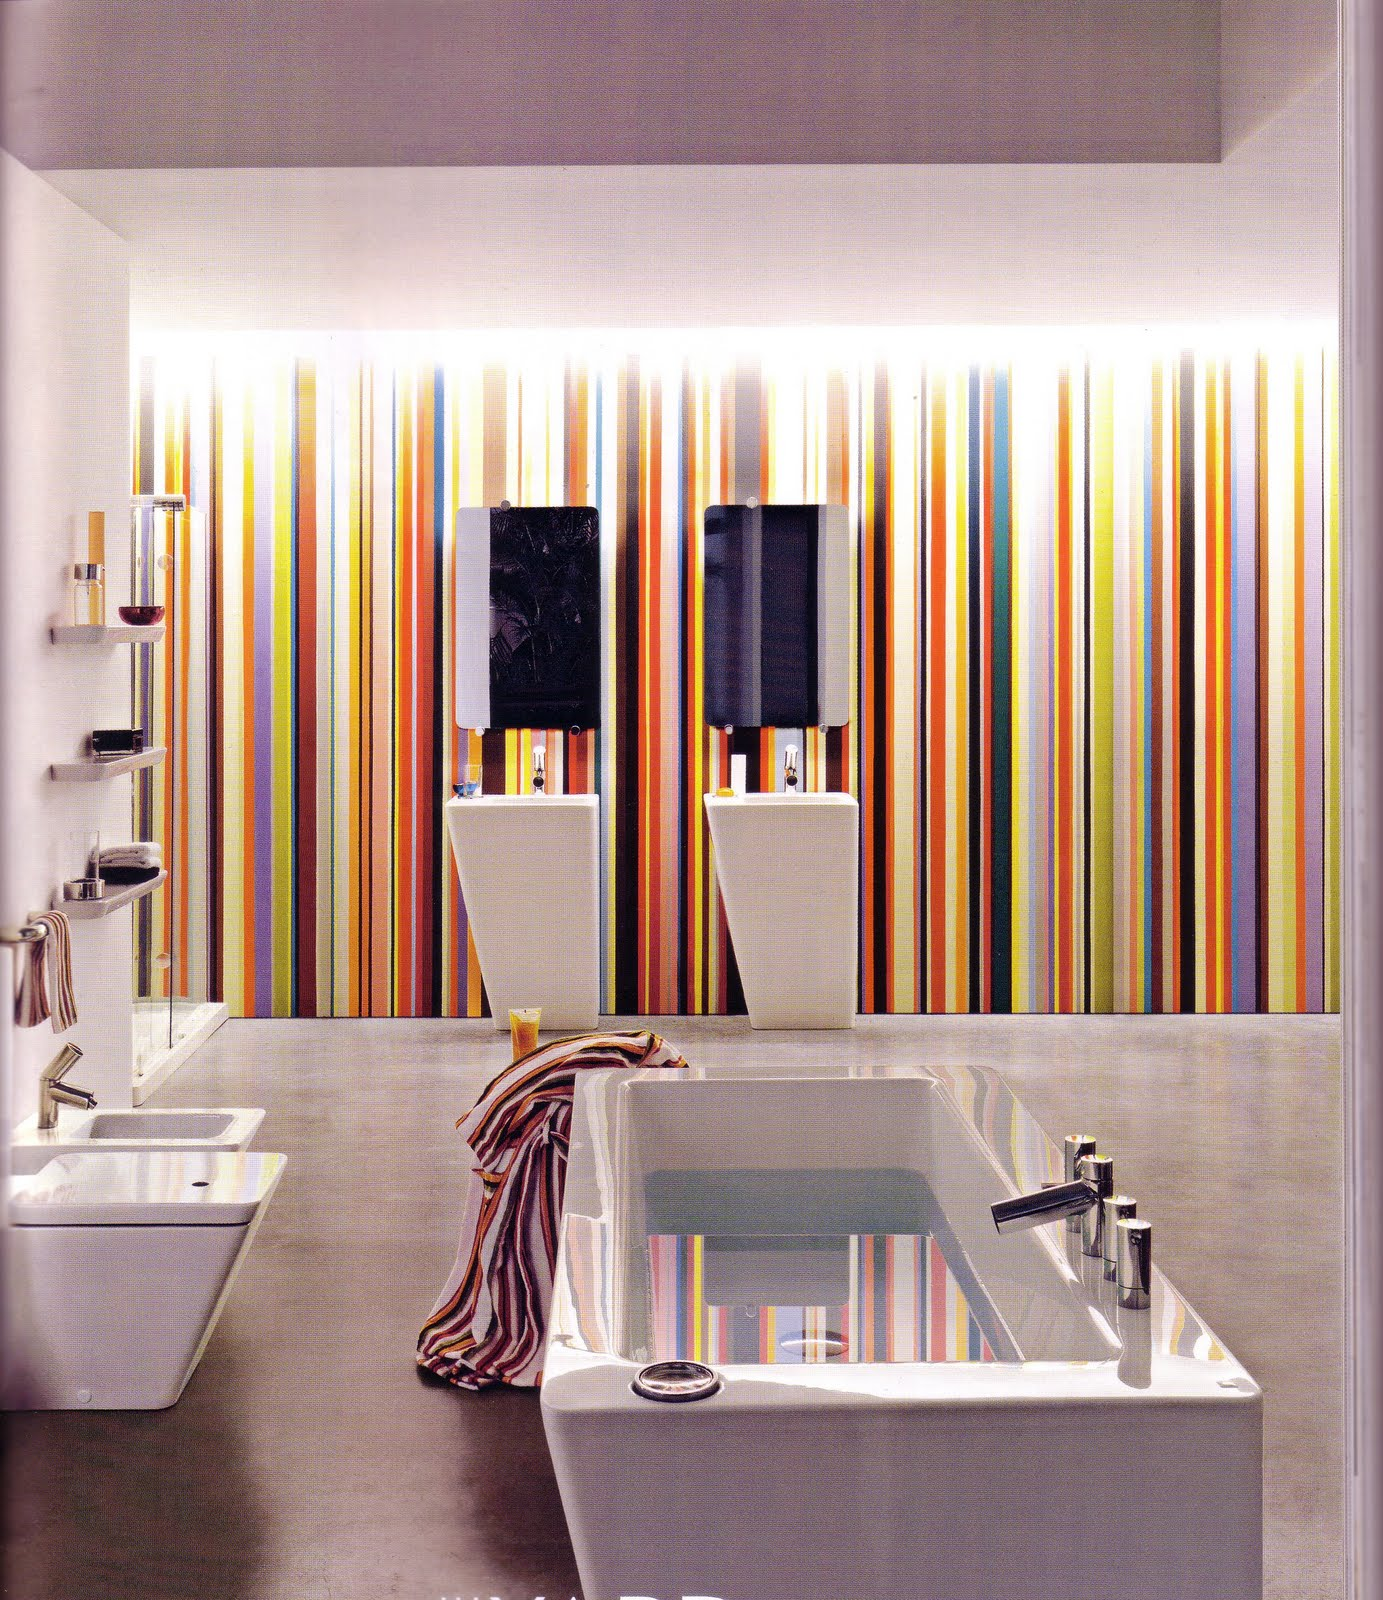 Is It Ok To Have Stripes On Accent Wall: Trends With Transformations: Funky Stripes